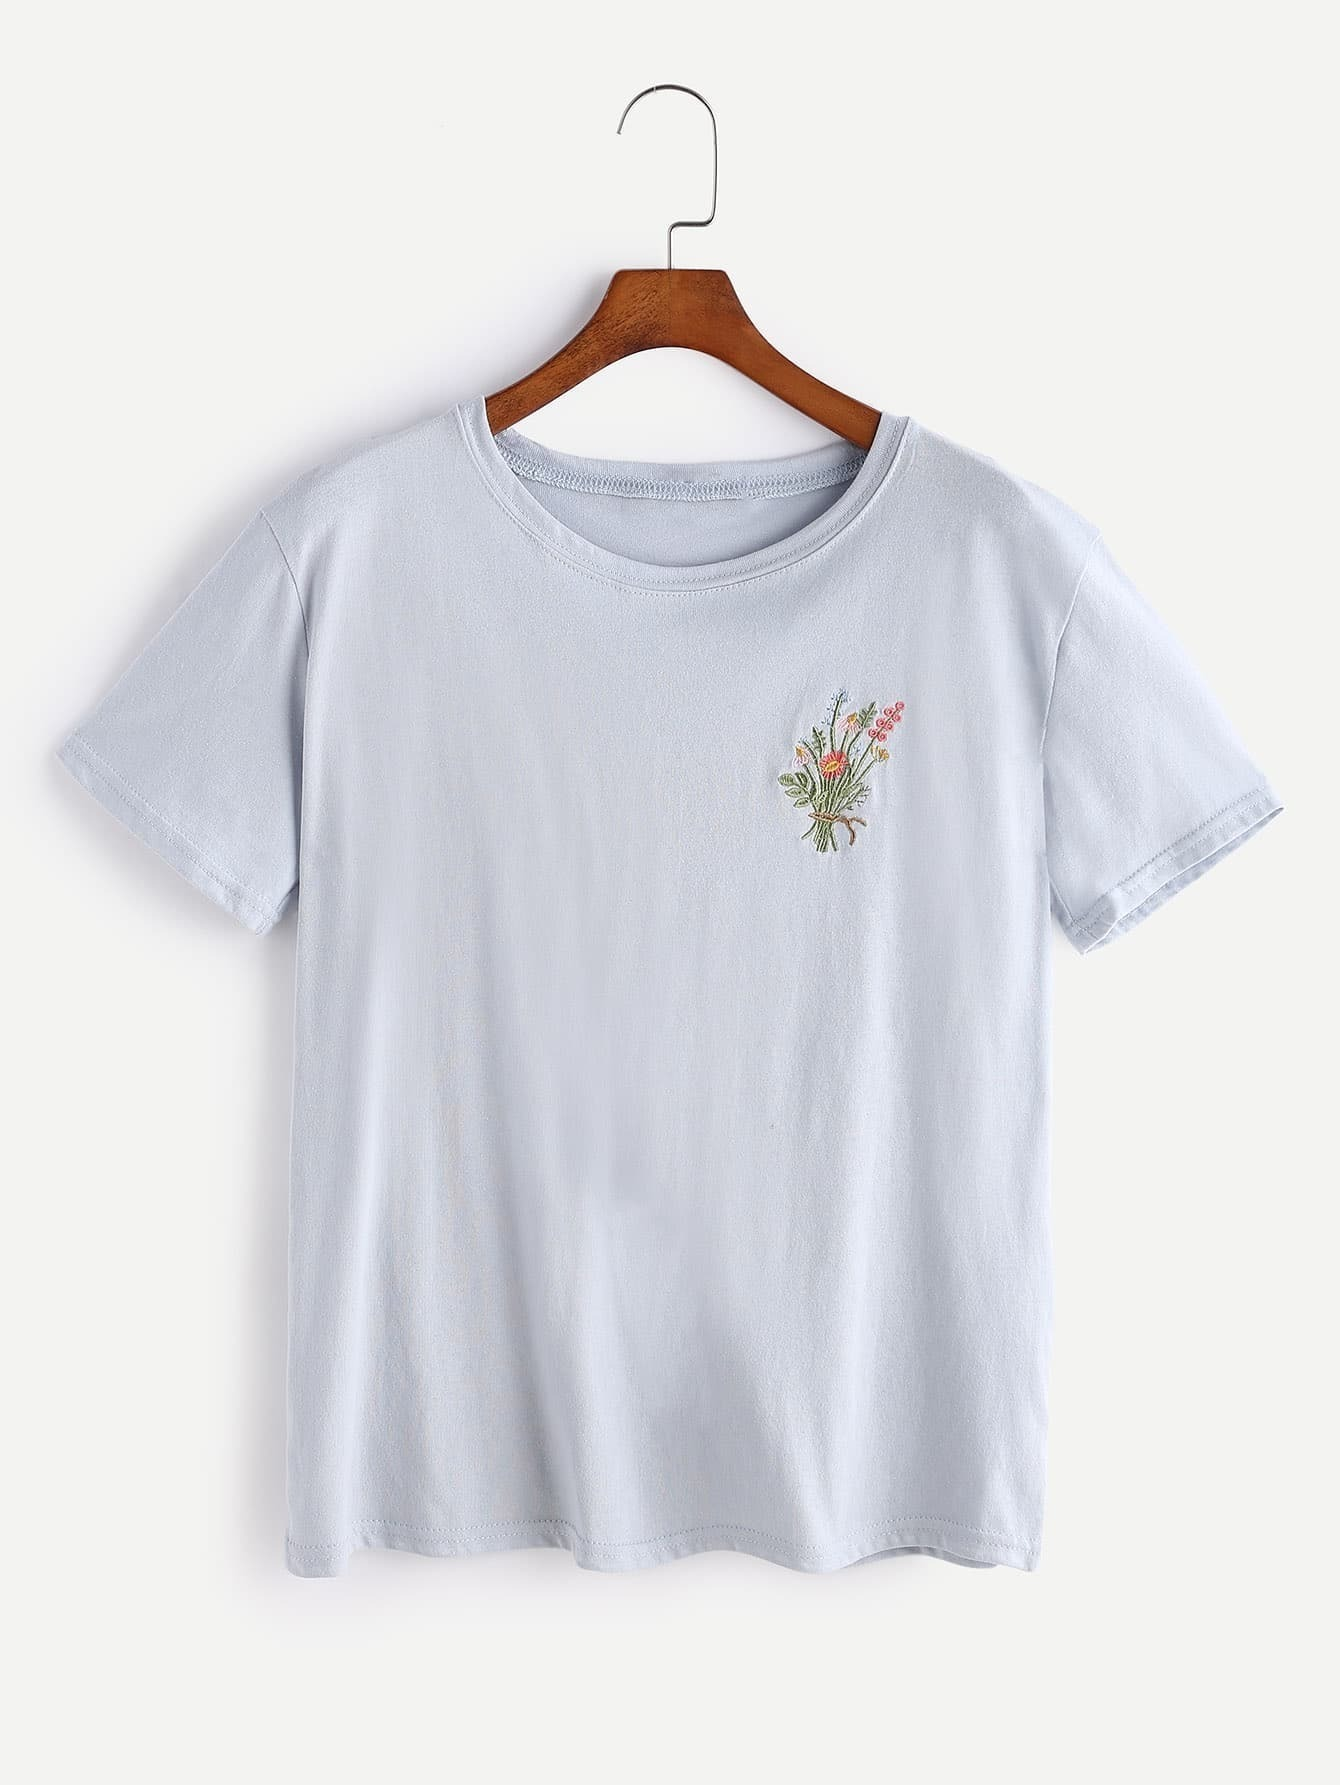 Botanical embroidered t shirtfor women romwe